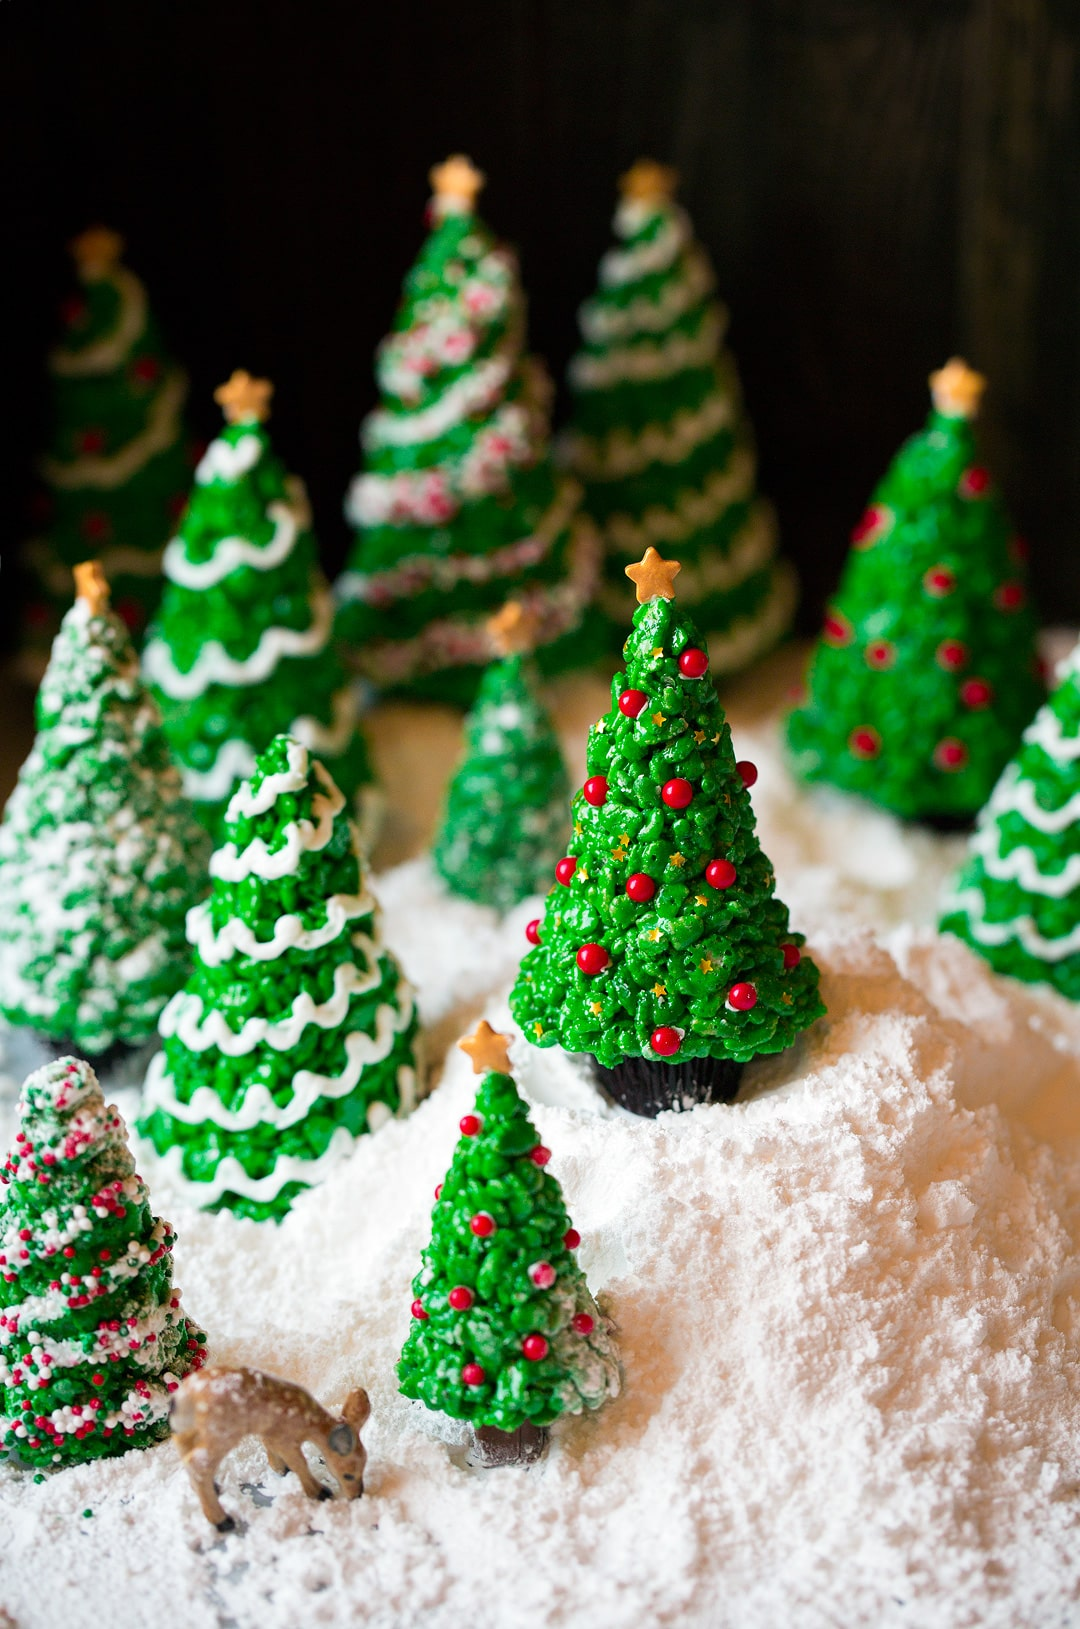 Rice Crispy Treat Christmas.Christmas Tree Rice Krispies Treats Cooking Classy